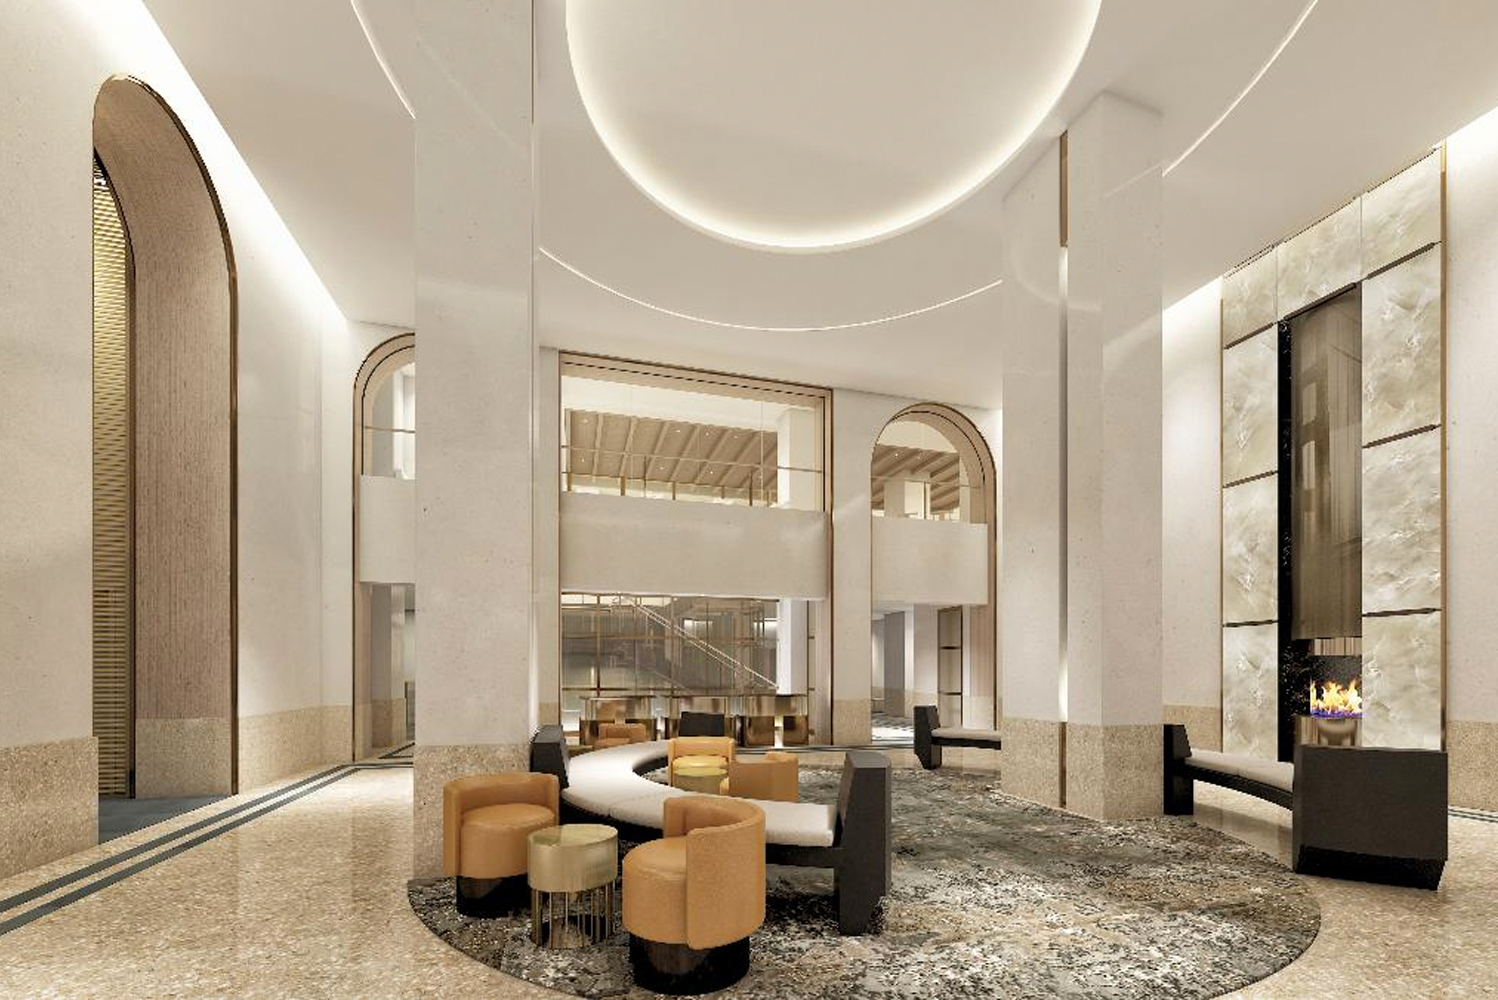 The Clift Royal Sonesta Hotel - a property located in San Francisco, California - is undergoing renovations expected to be completed on January 8, 2020.